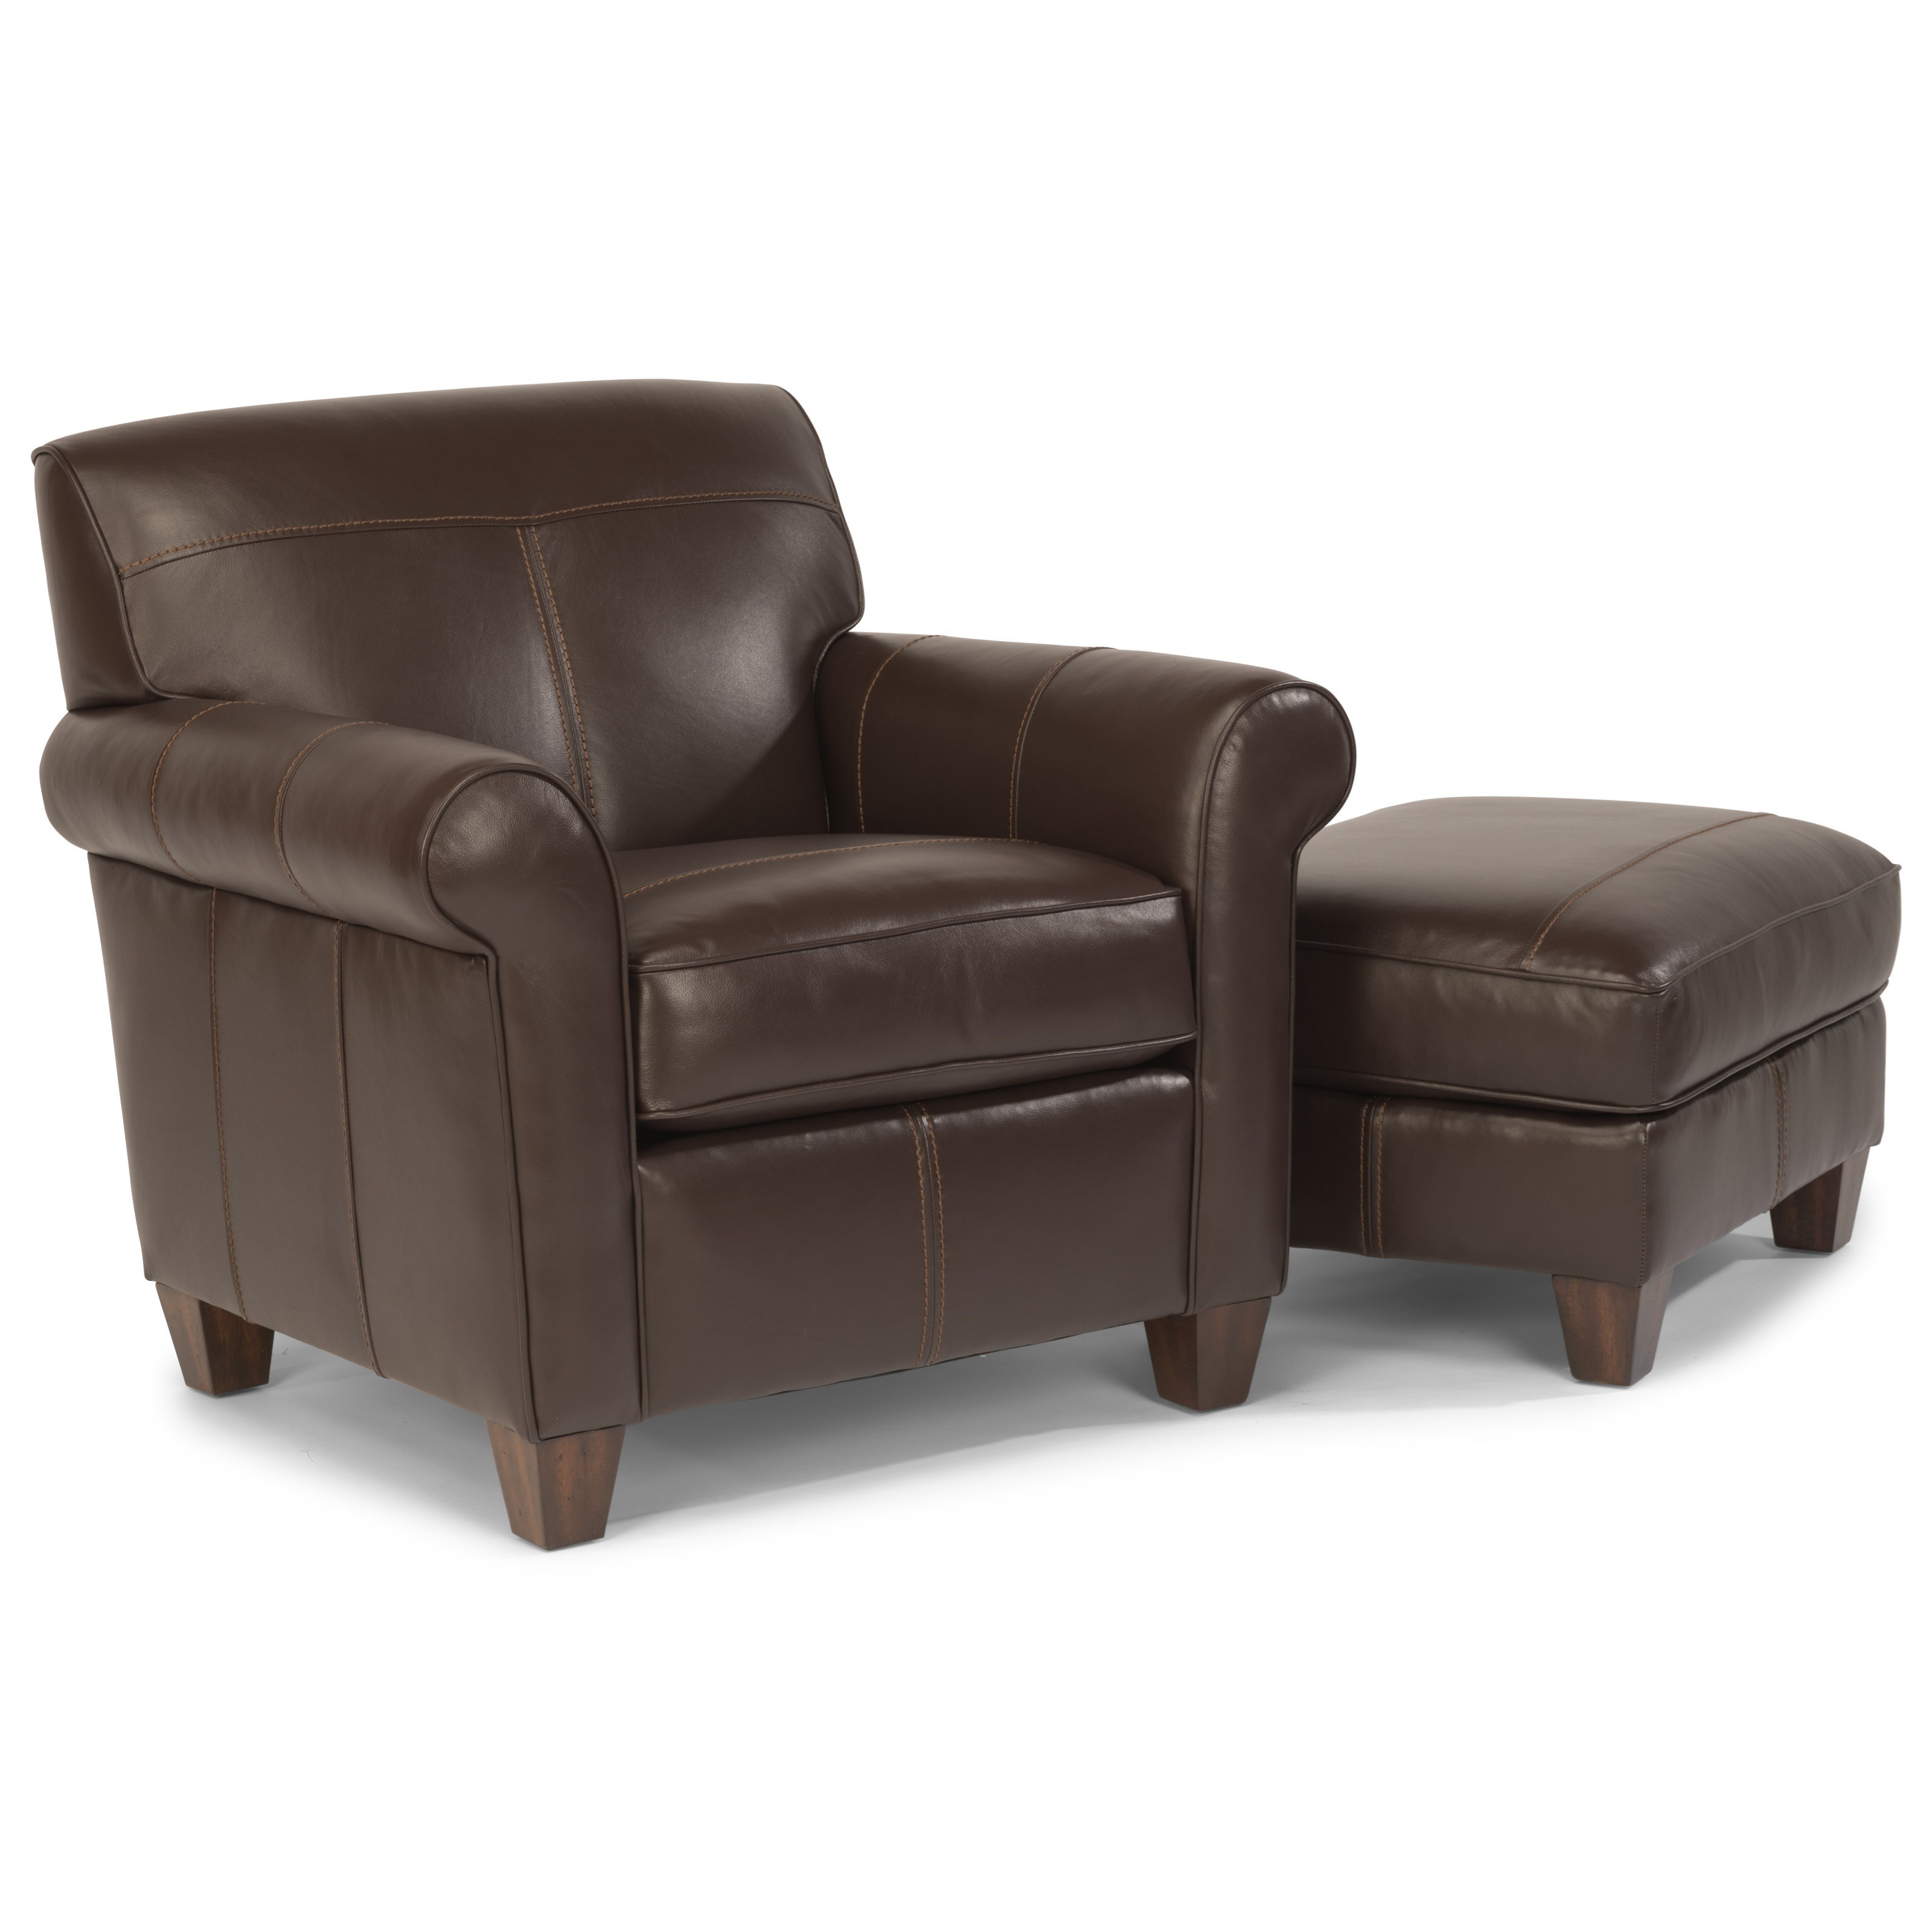 Dana Chair and Ottoman by Flexsteel at Jordan's Home Furnishings